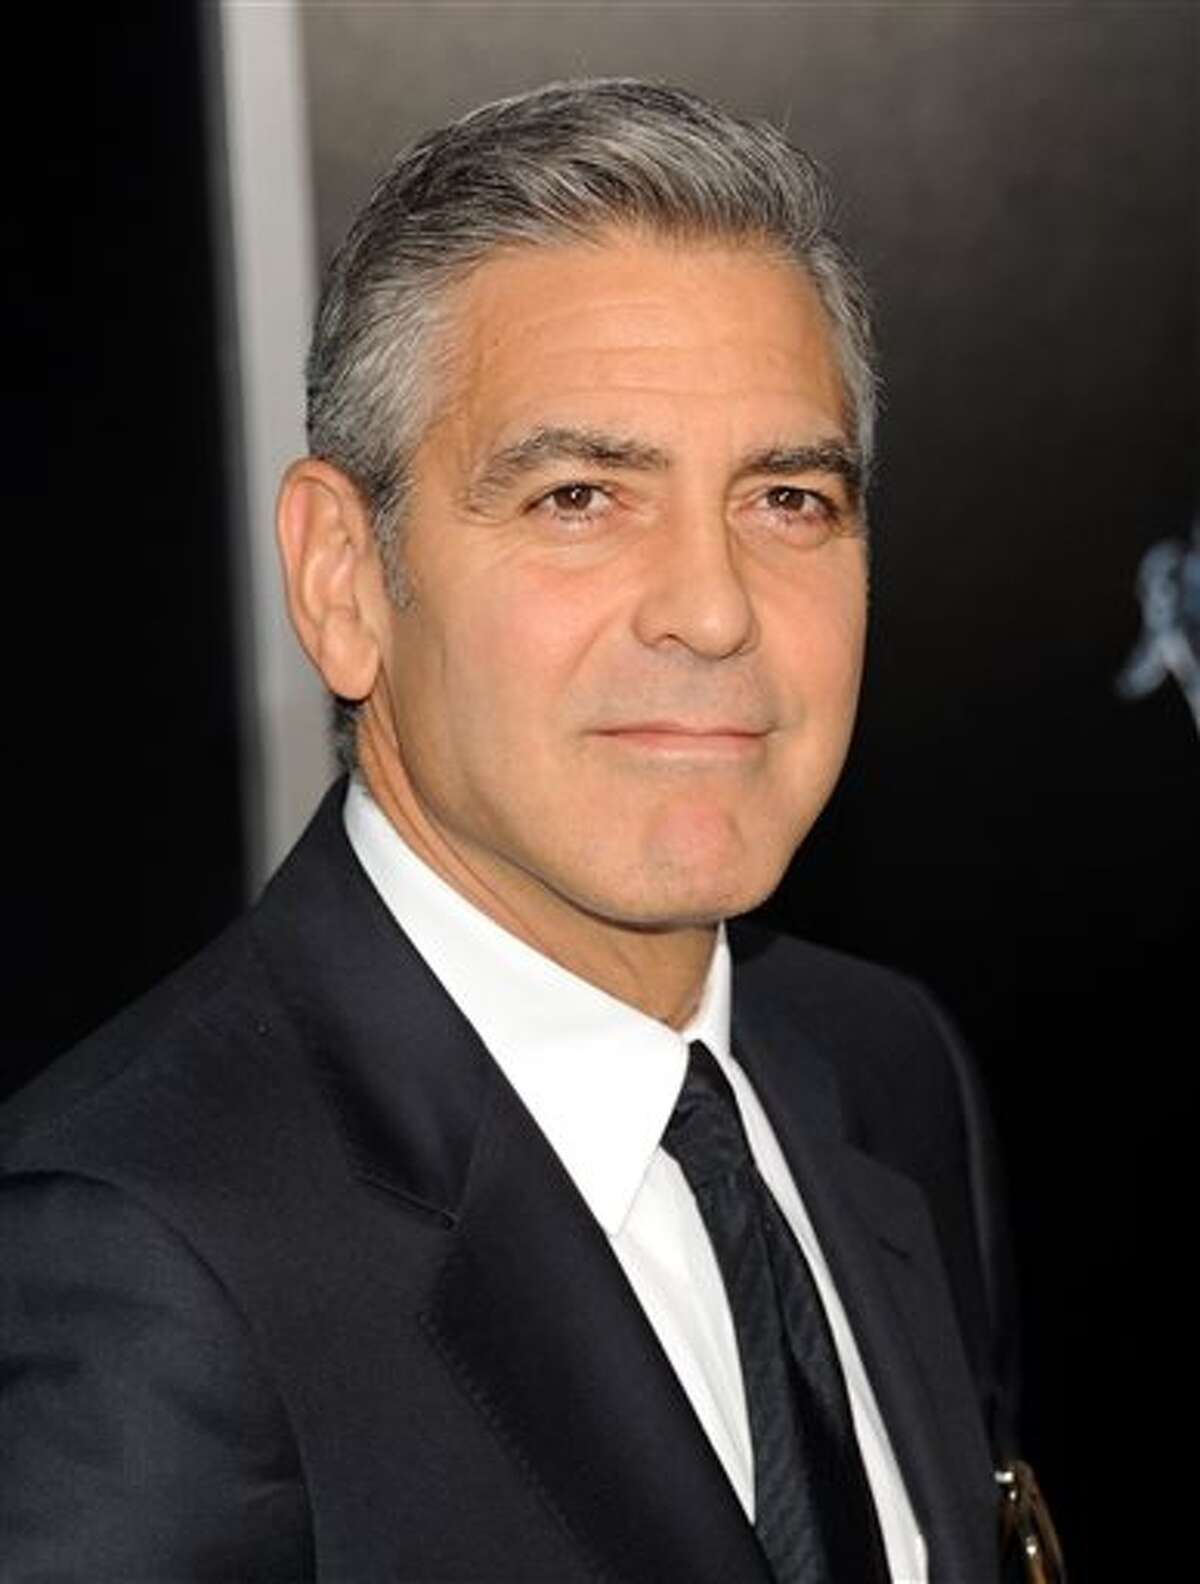 """Actor George Clooney attends the premiere of """"Gravity"""" at the AMC Lincoln Square Theaters on Tuesday, Oct. 1, 2013, in New York. (Photo by Evan Agostini/Invision/AP)"""